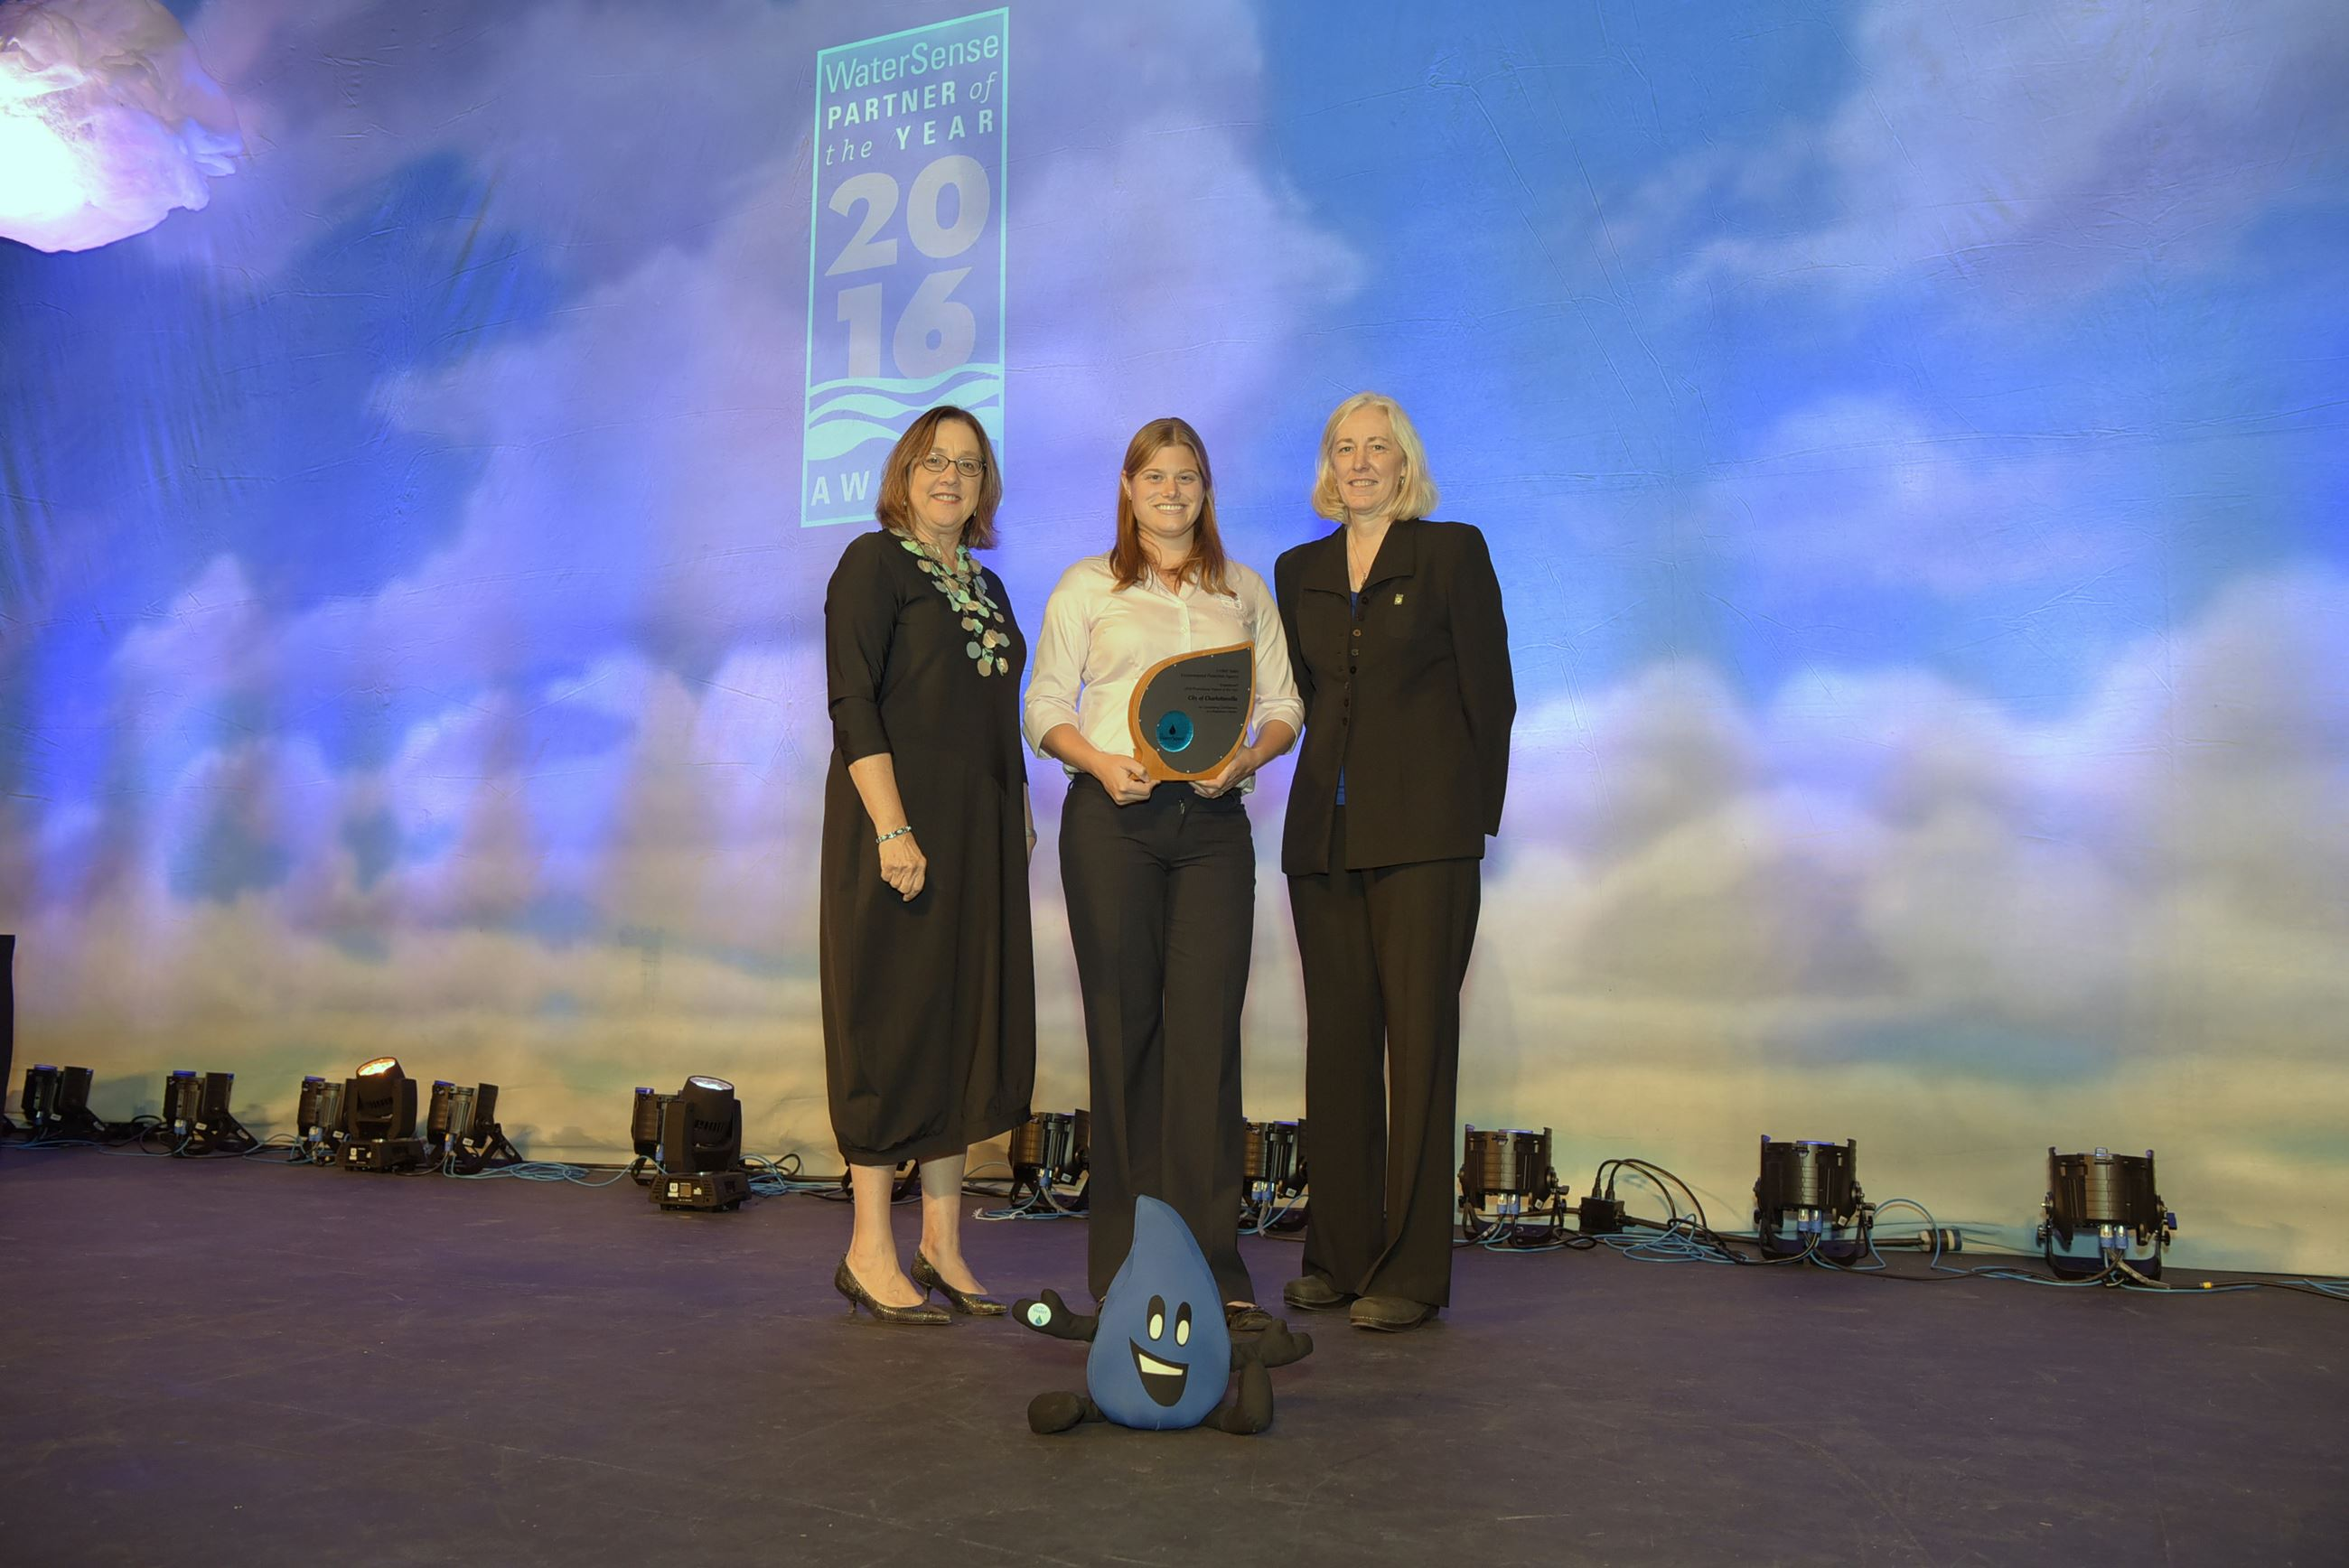 Charlottesville accepting the 2016 WaterSense Partner of the Year Award